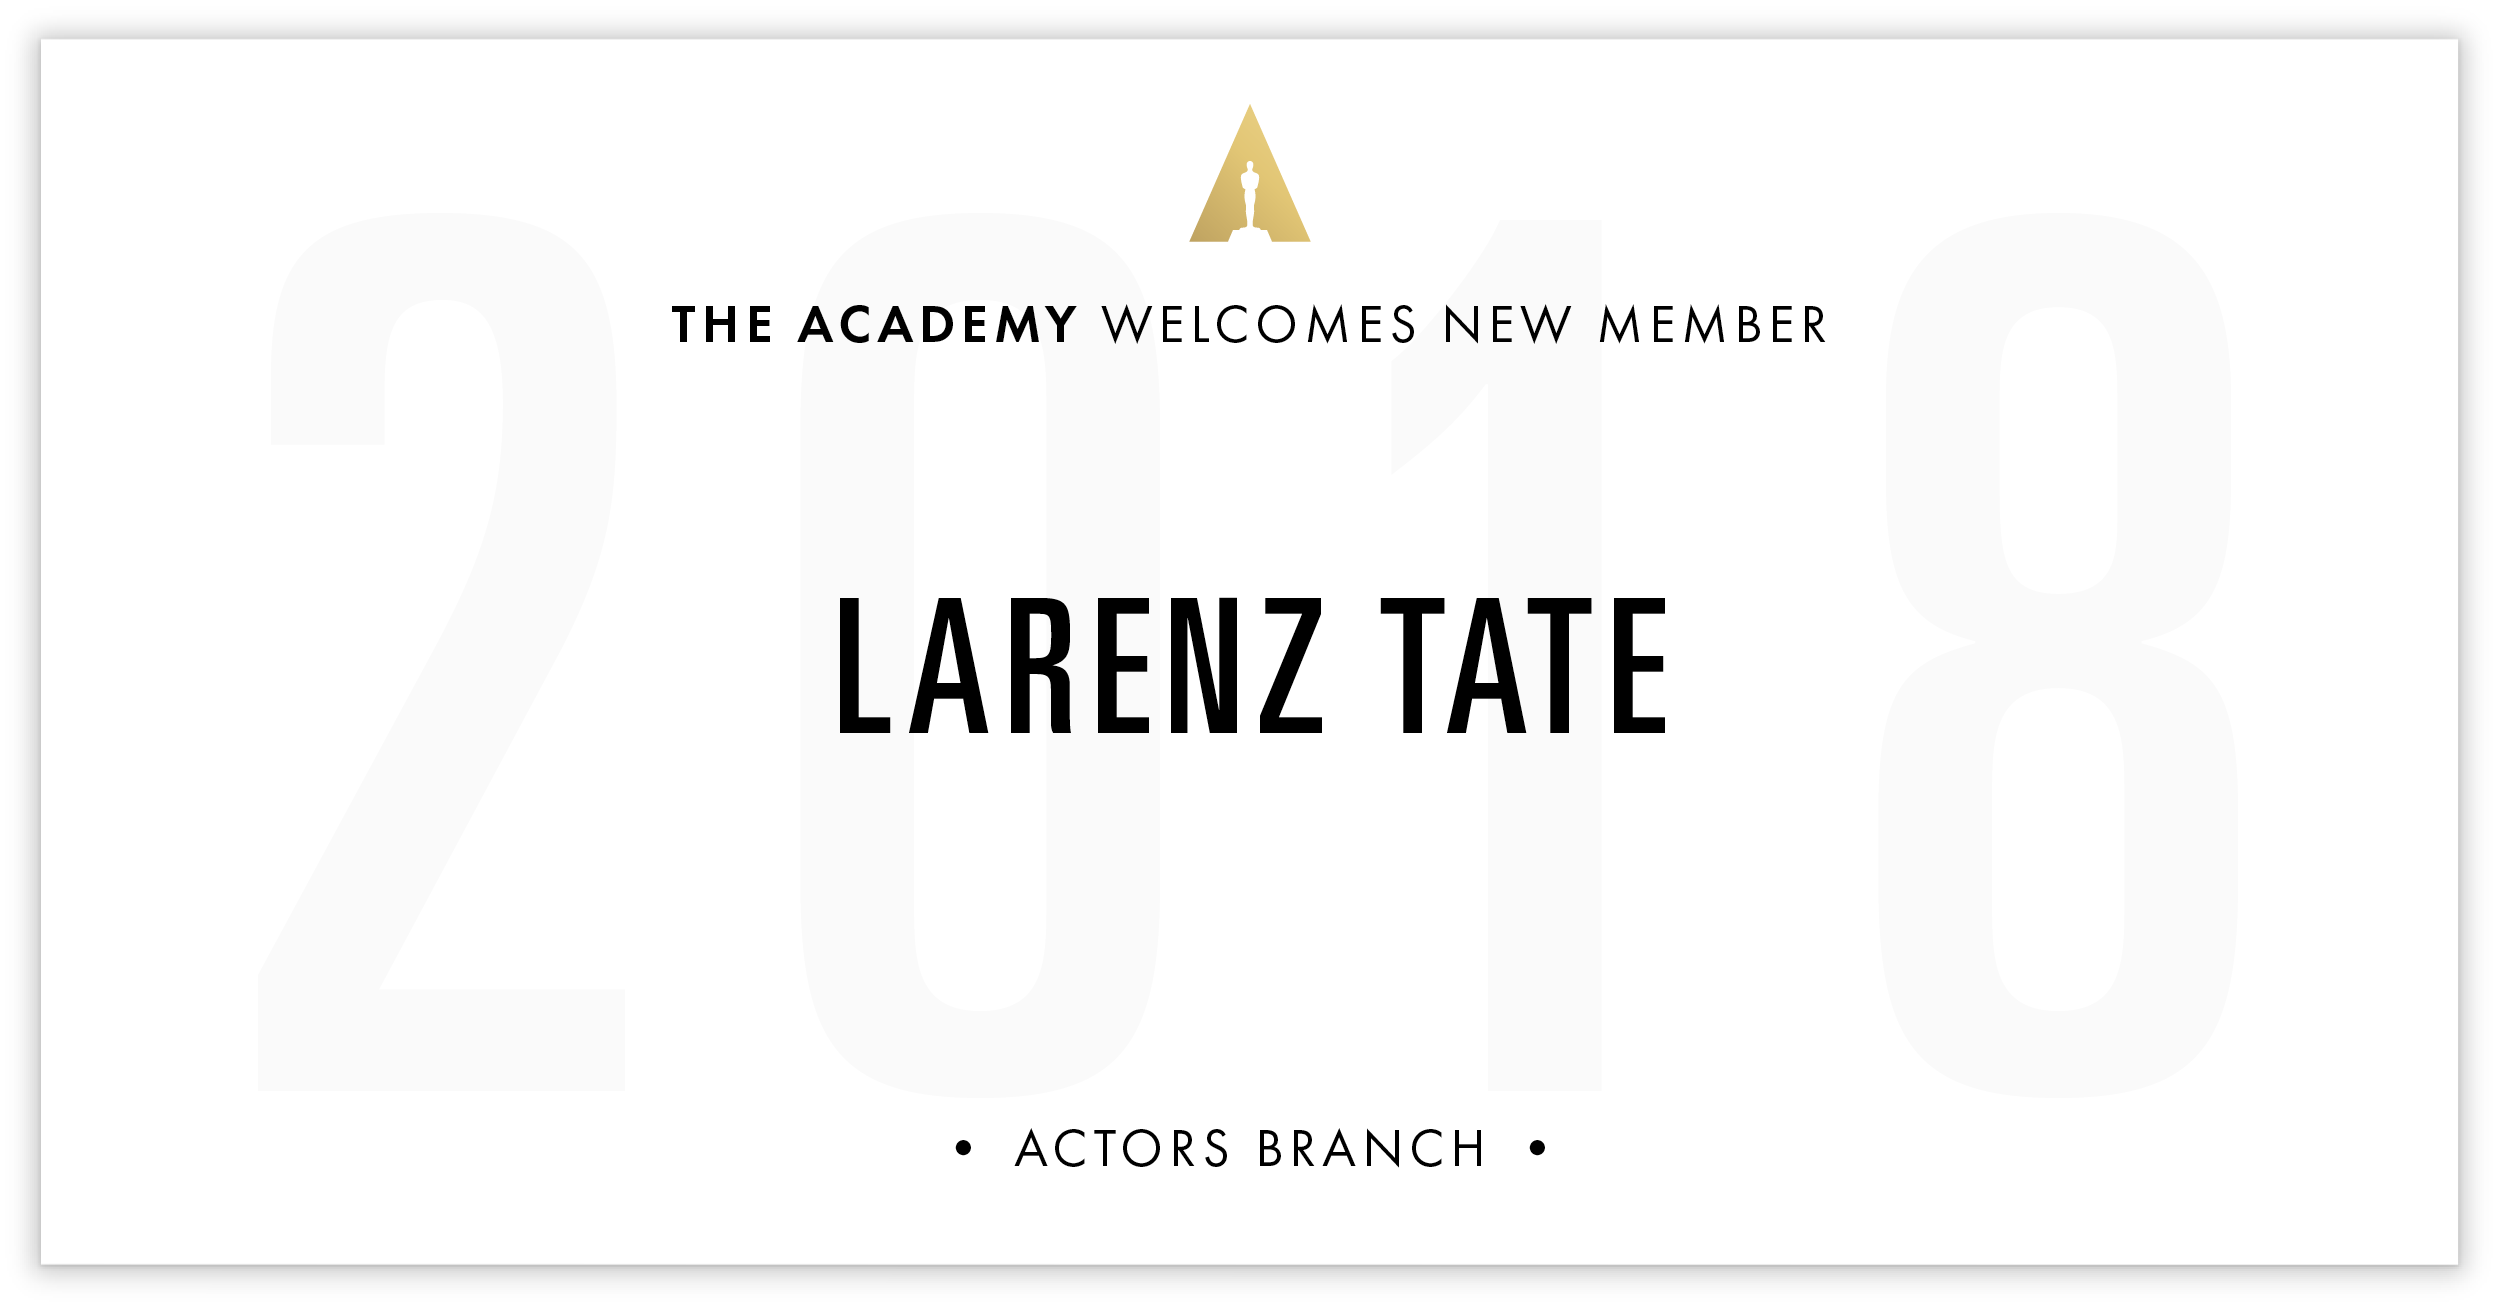 Larenz Tate is invited!